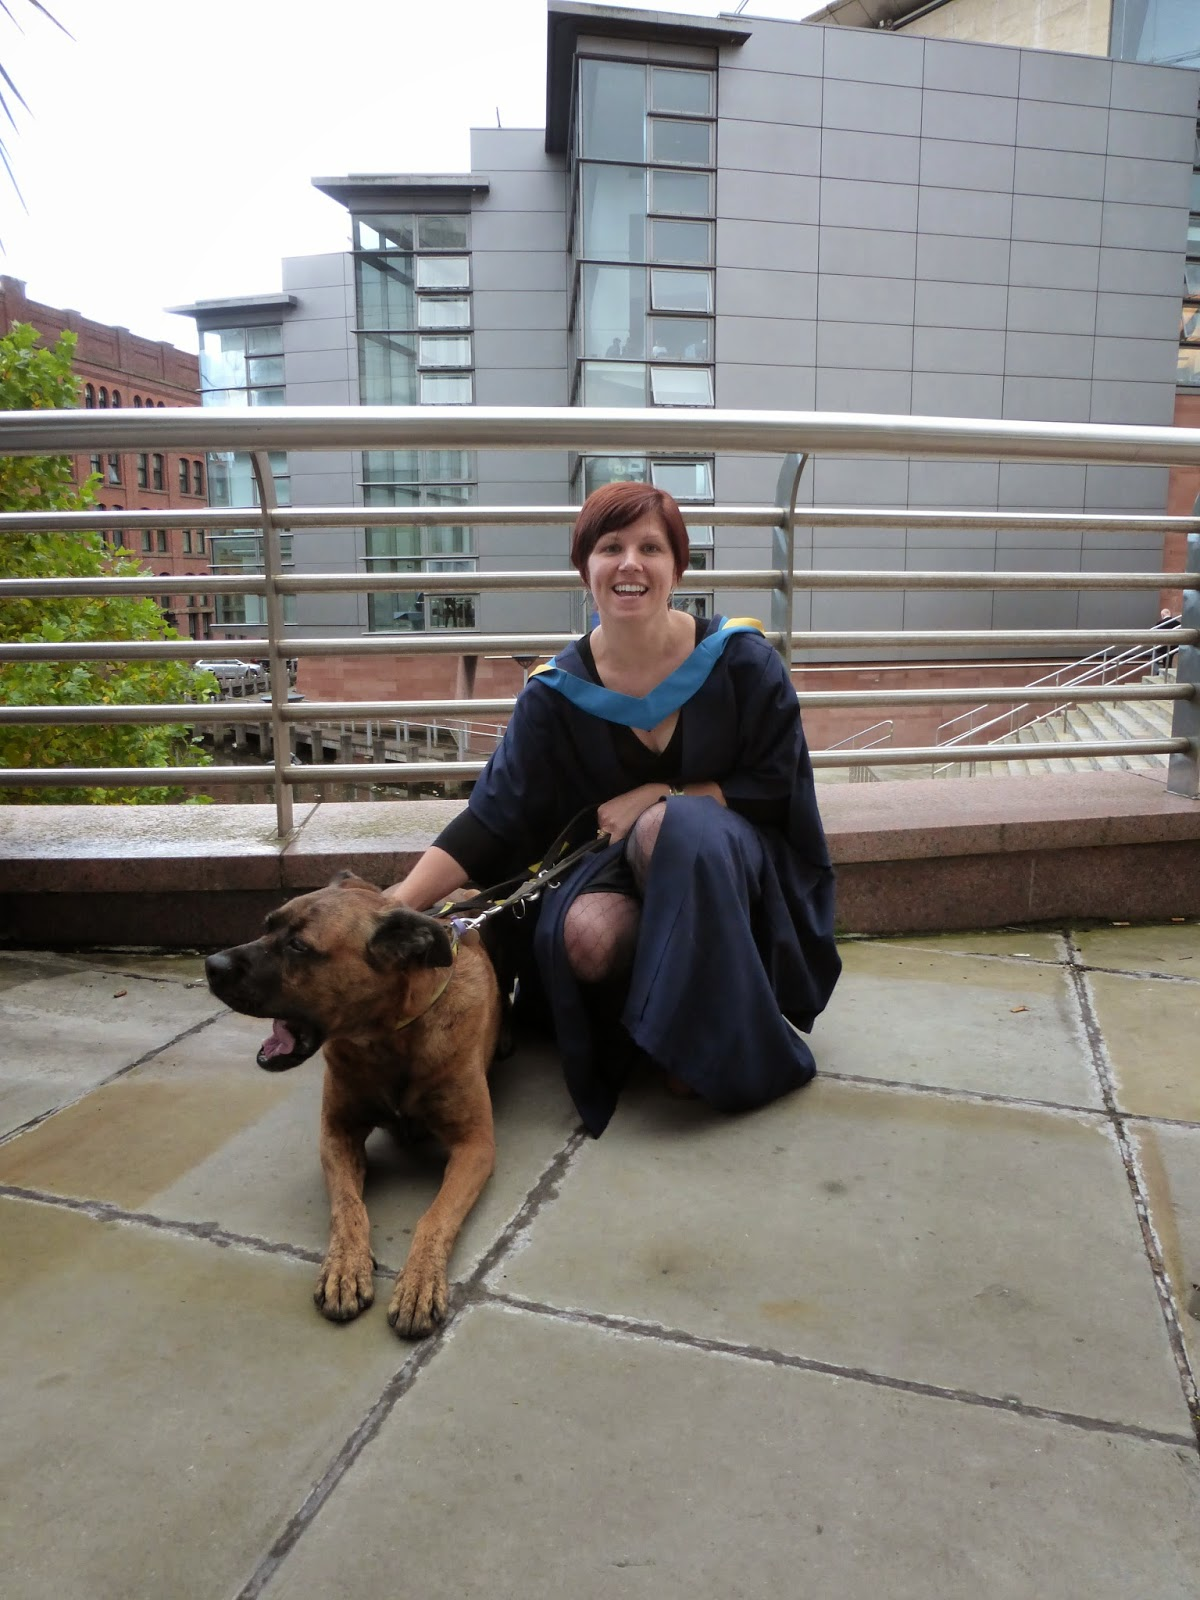 Open university graduation 2014 manchester me and Fizz